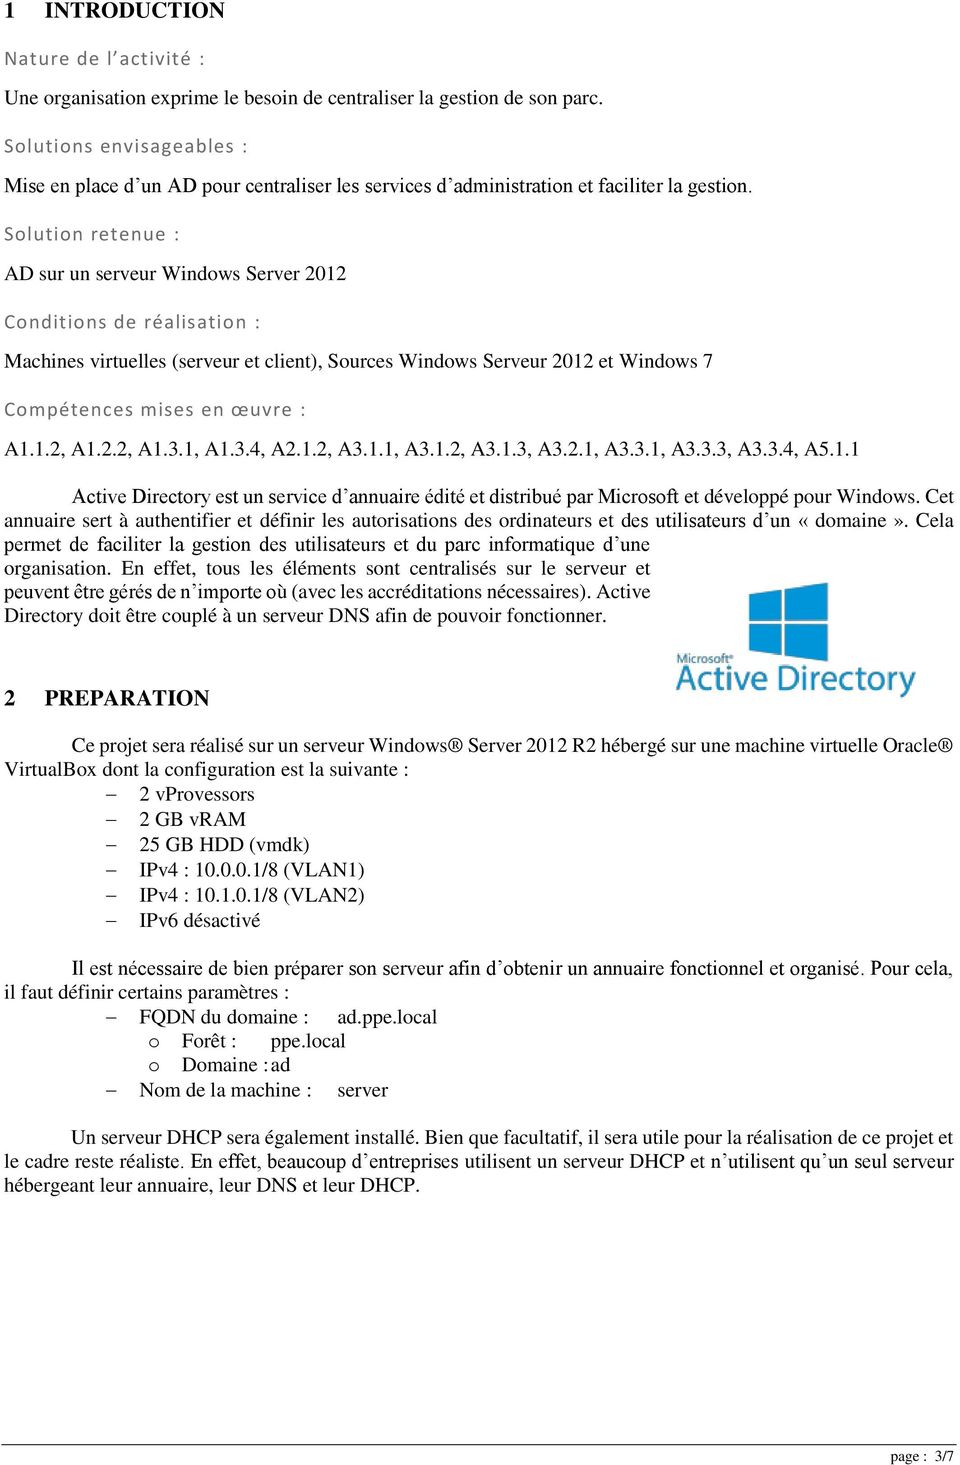 Solution retenue : AD sur un serveur Windows Server 2012 Conditions de réalisation : Machines virtuelles (serveur et client), Sources Windows Serveur 2012 et Windows 7 Compétences mises en œuvre : A1.